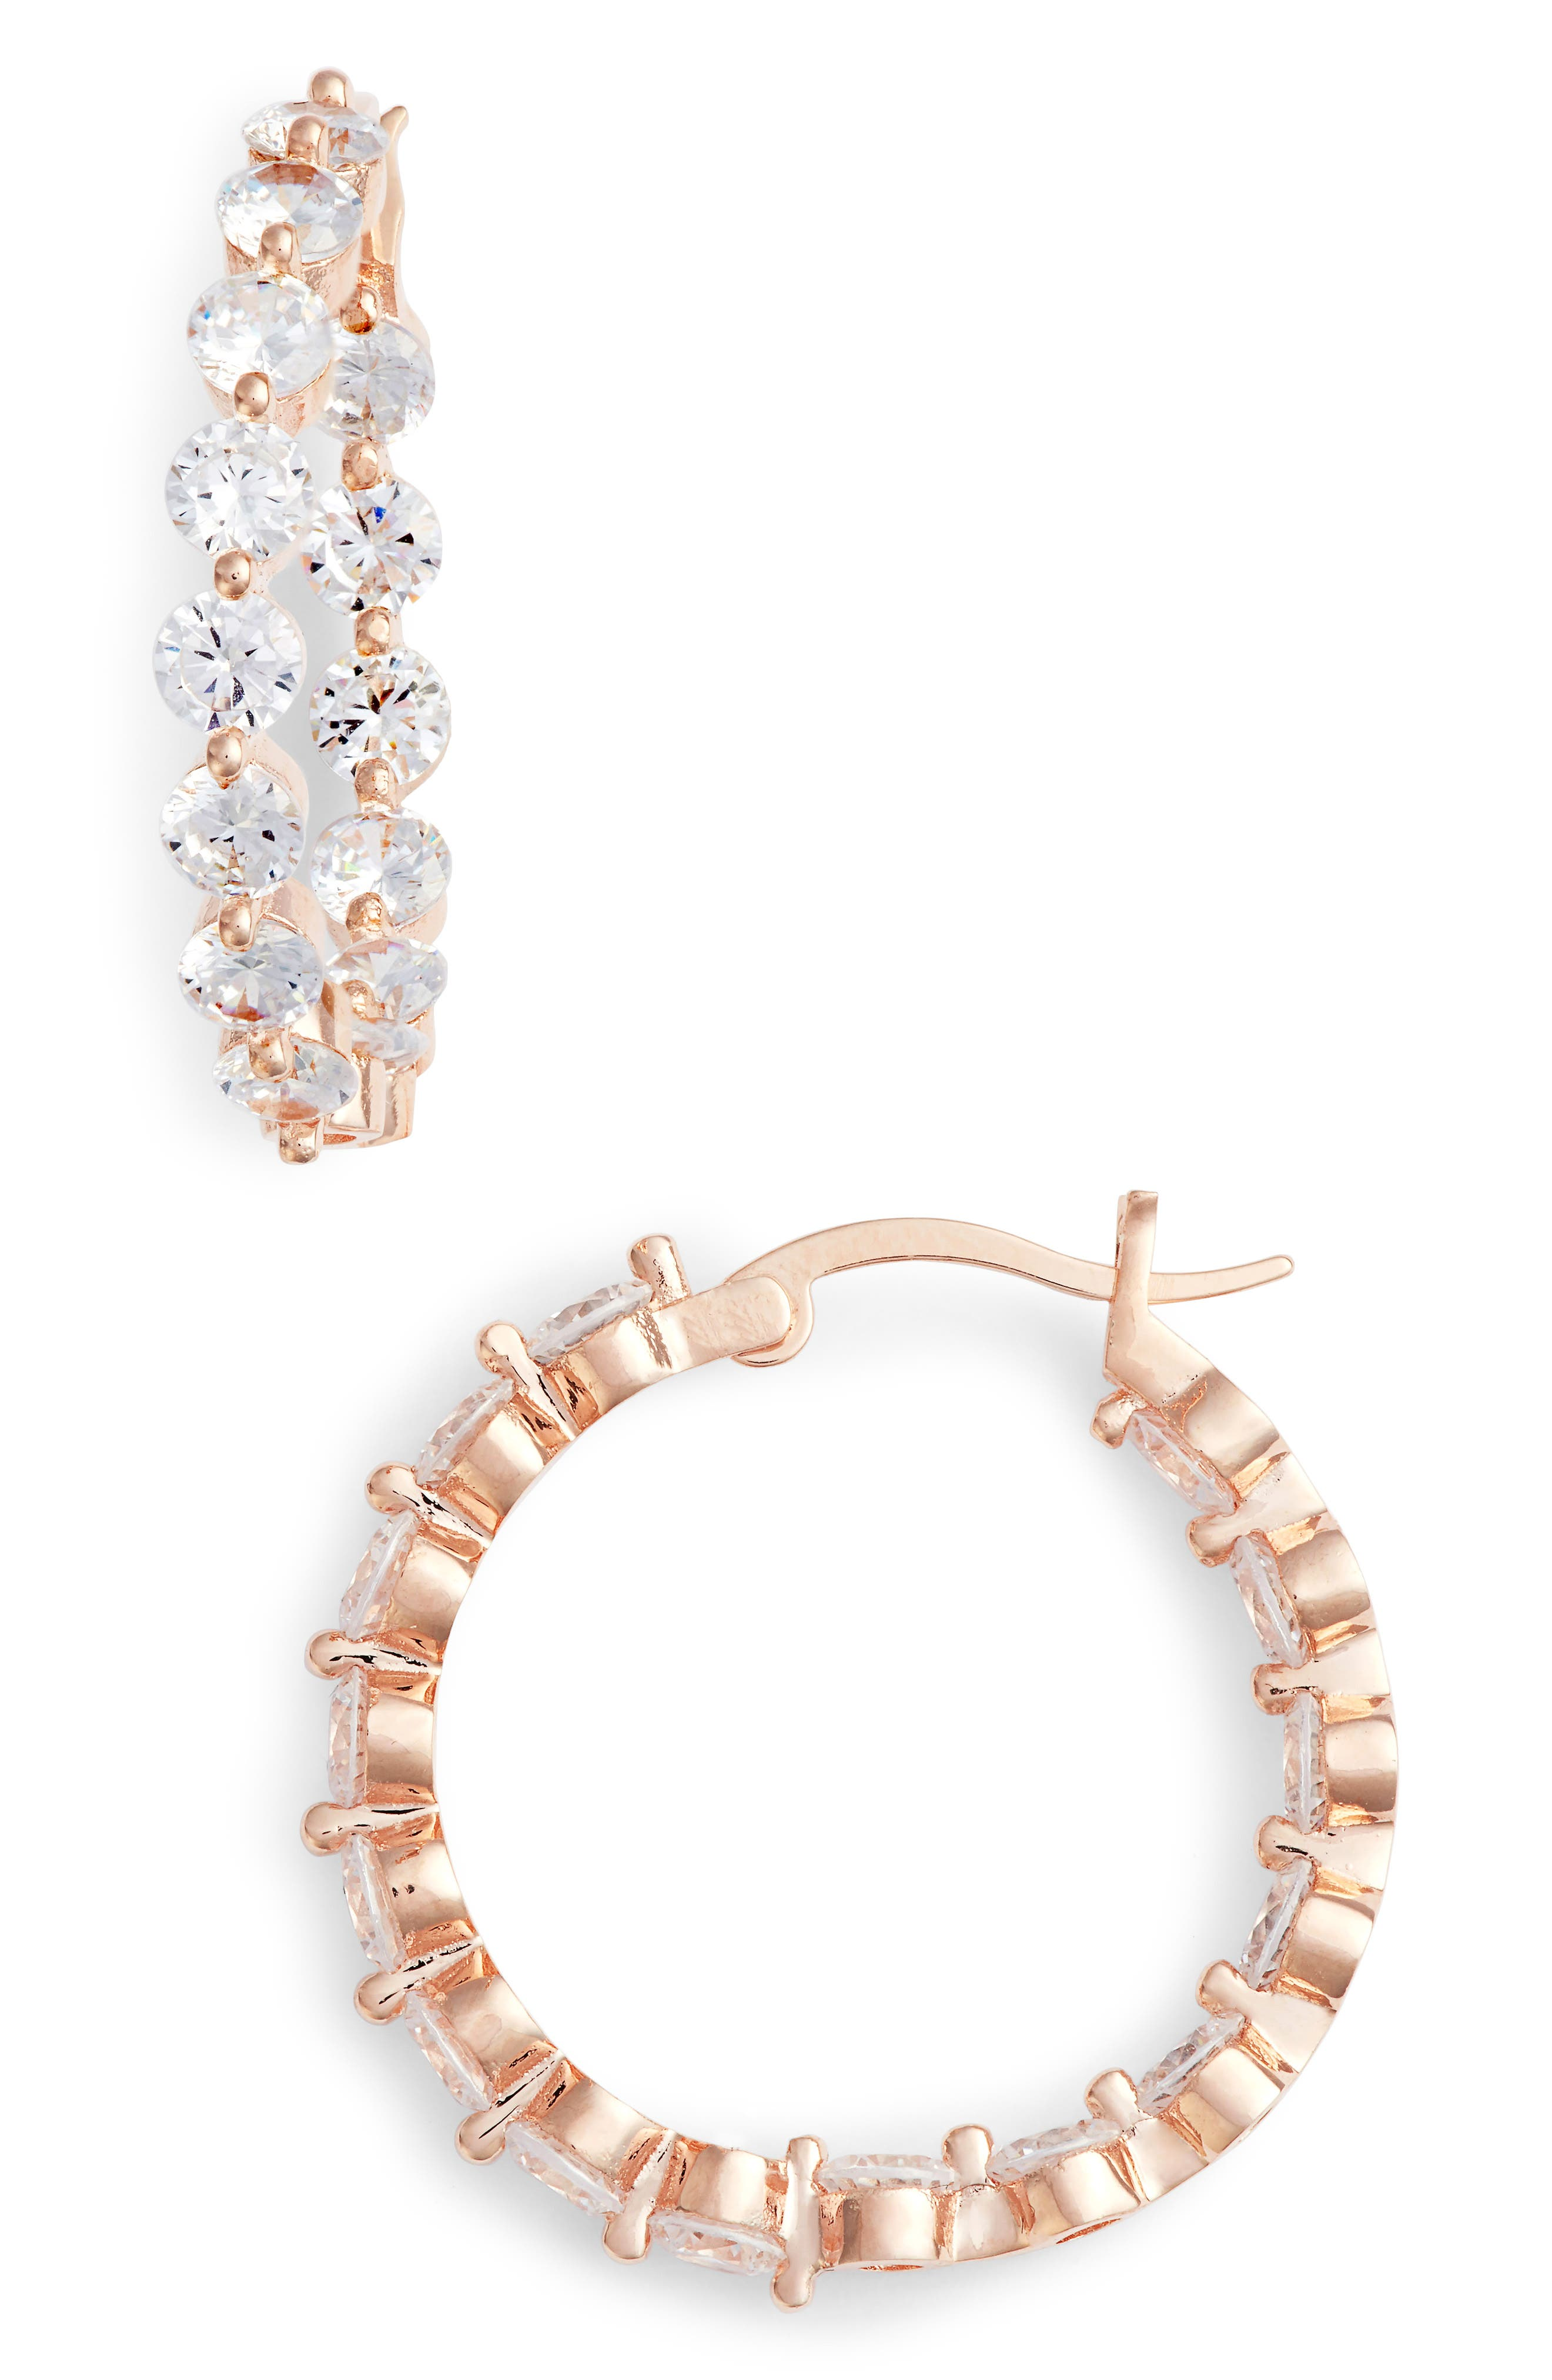 Medium Cubic Zirconia Hoop Earrings,                         Main,                         color, ROSE GOLD/ WHITE CZ